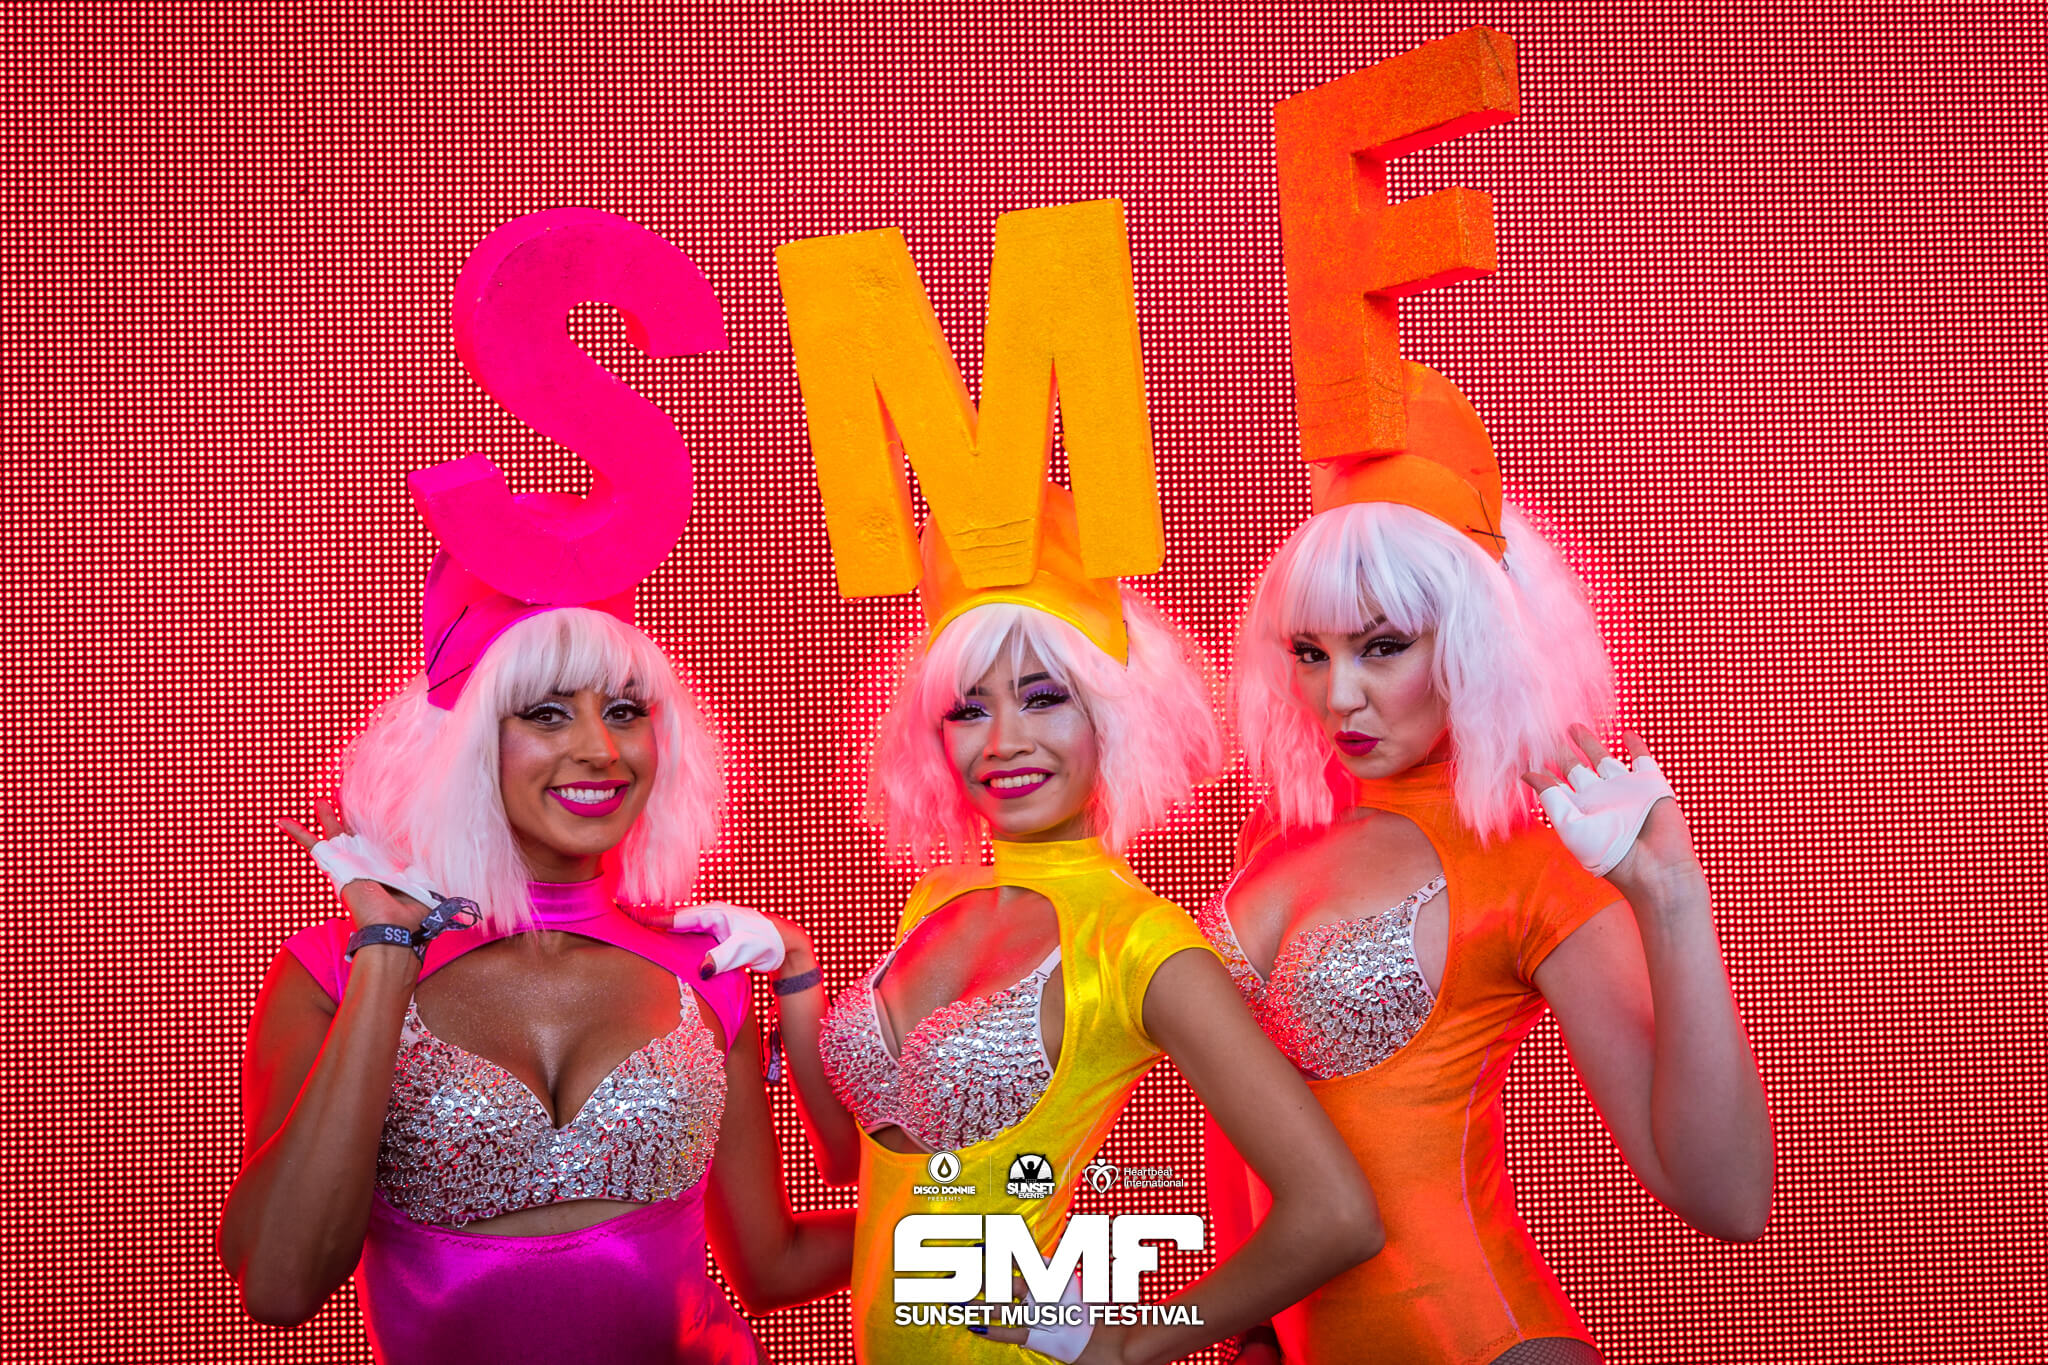 costumed performers showcase the SMF brand